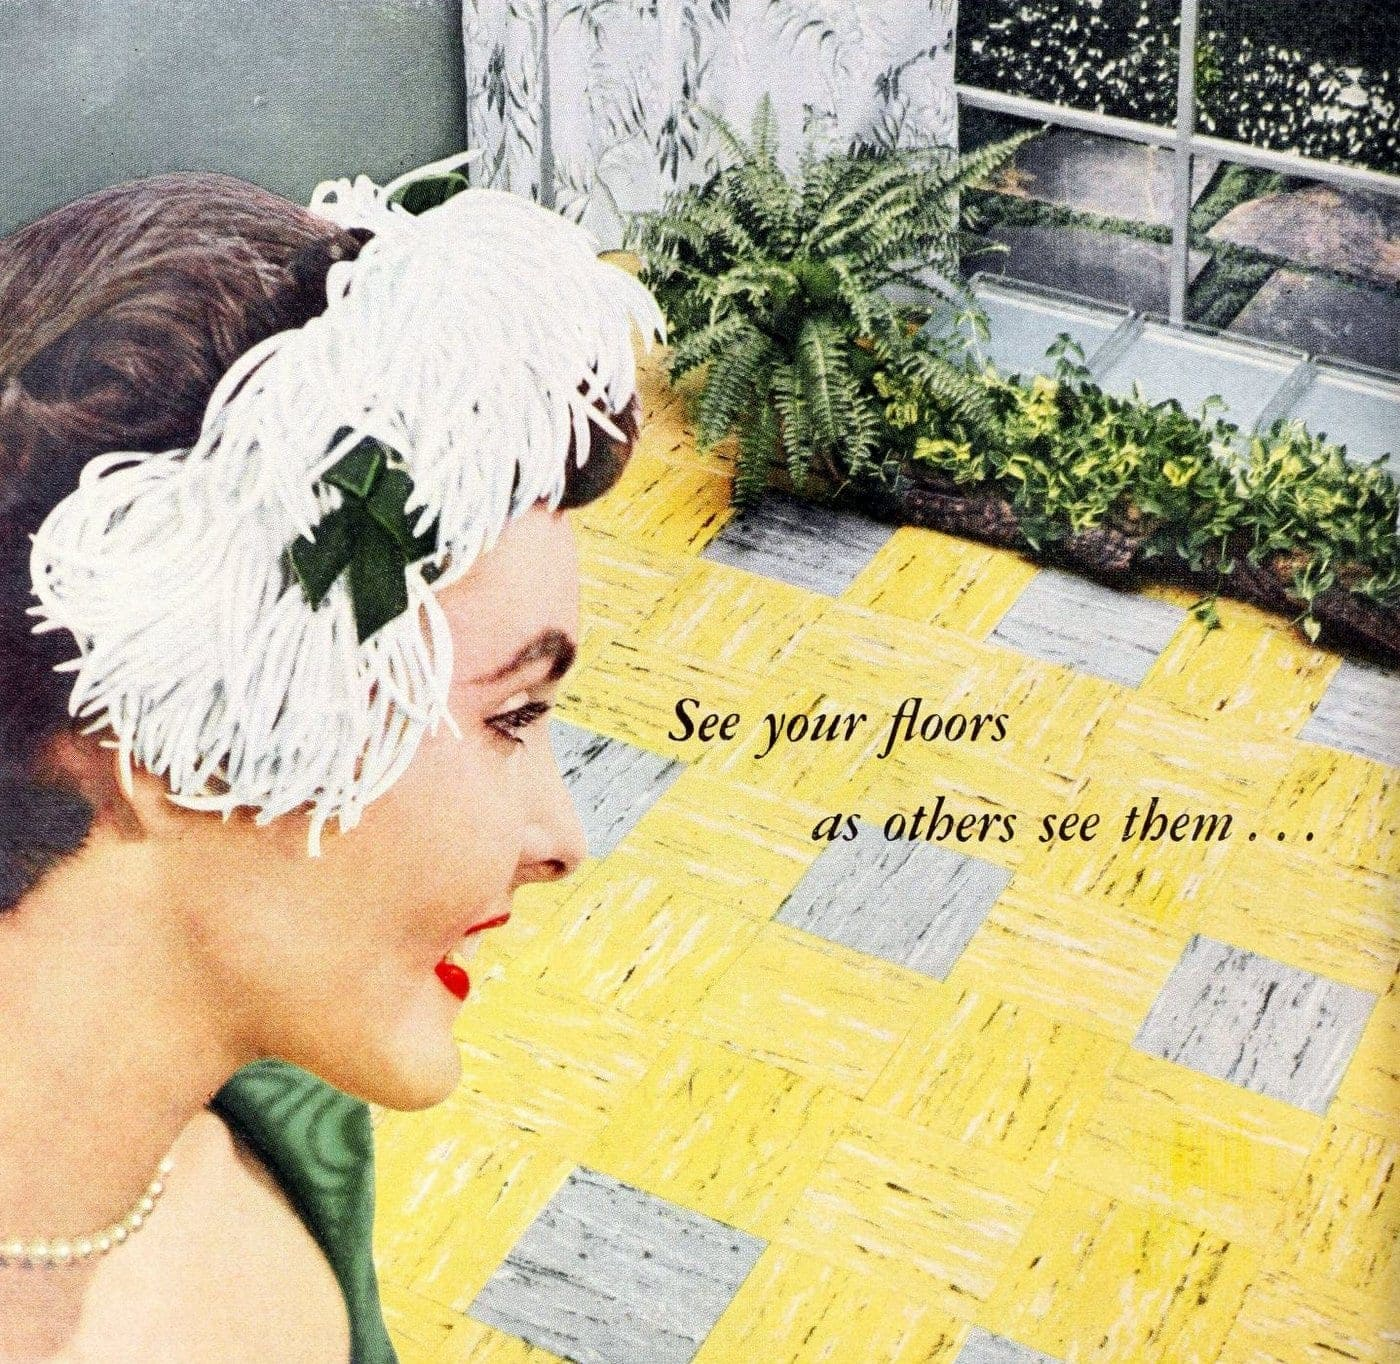 Retro woman from 1955 checking out yellow and grey vinyl tile floor